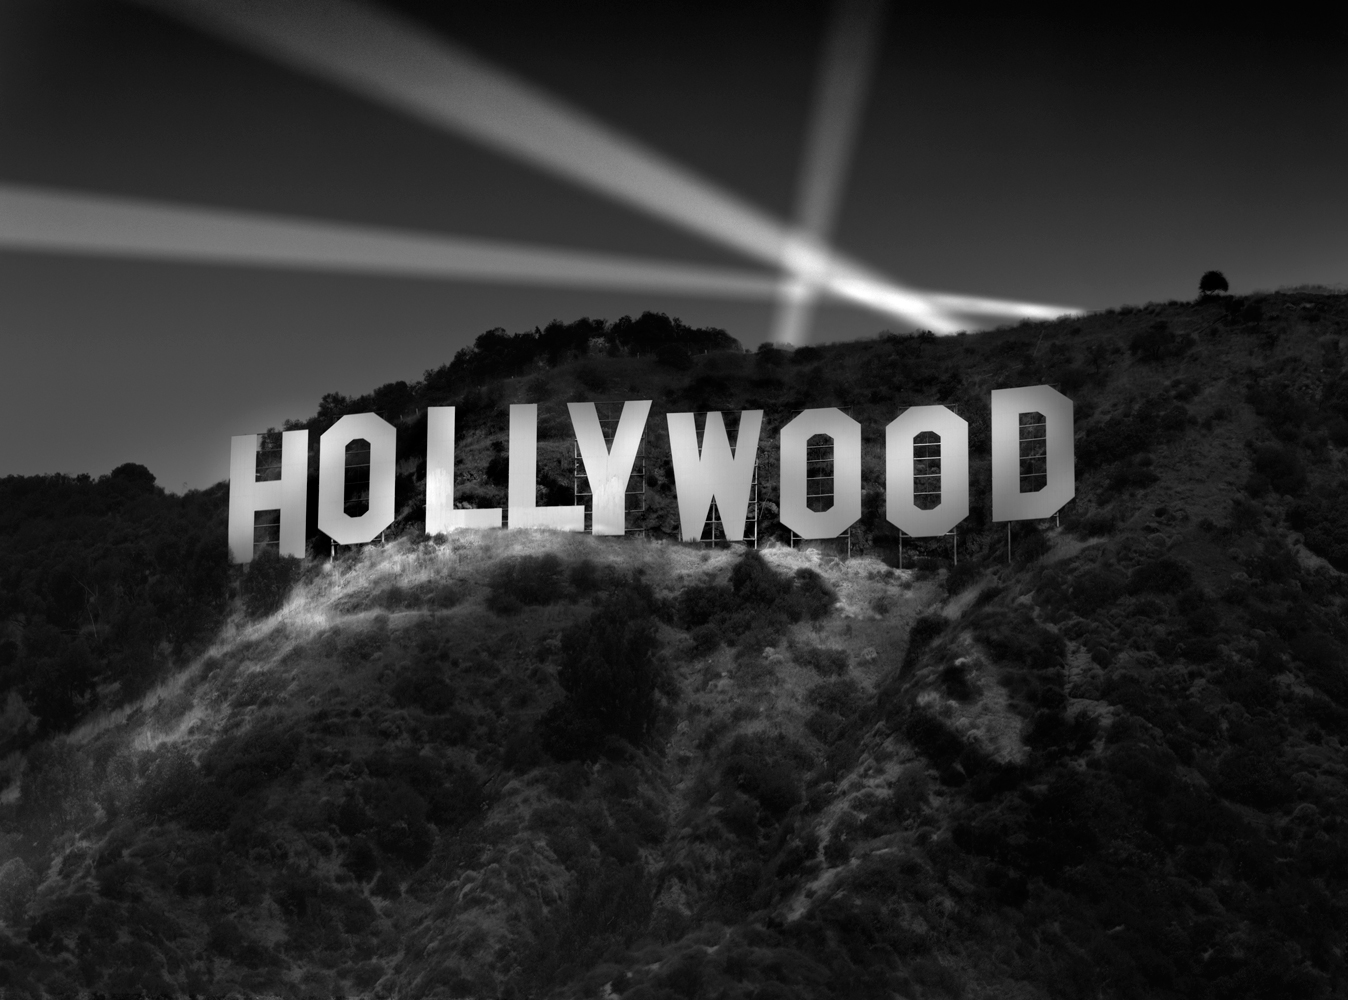 http://scripteach.com/wp-content/uploads/2012/01/Richard-Lund-hollywood-sign-at-night.jpg